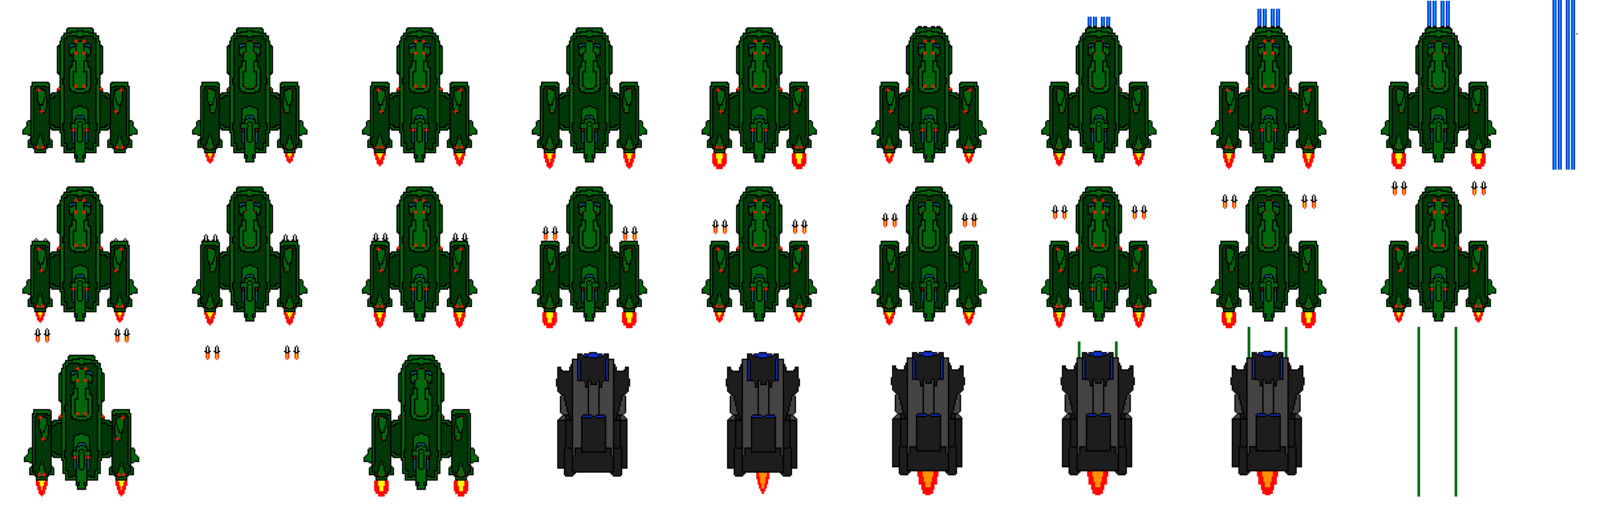 Sprite sheet for both the player and enemy ships.